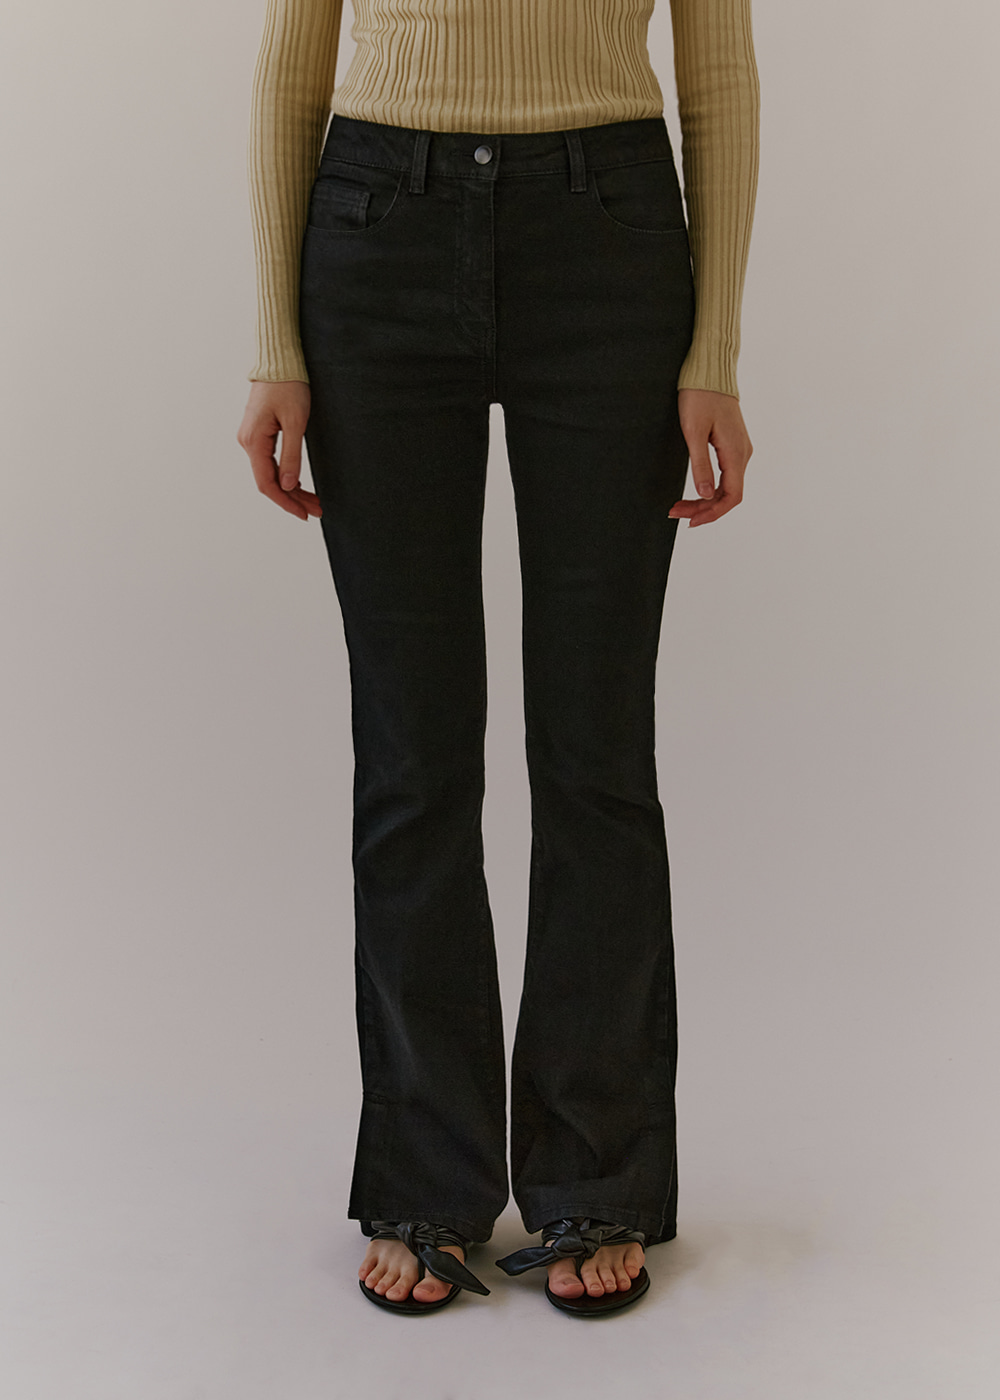 BOOTCUT DENIM - BLACK